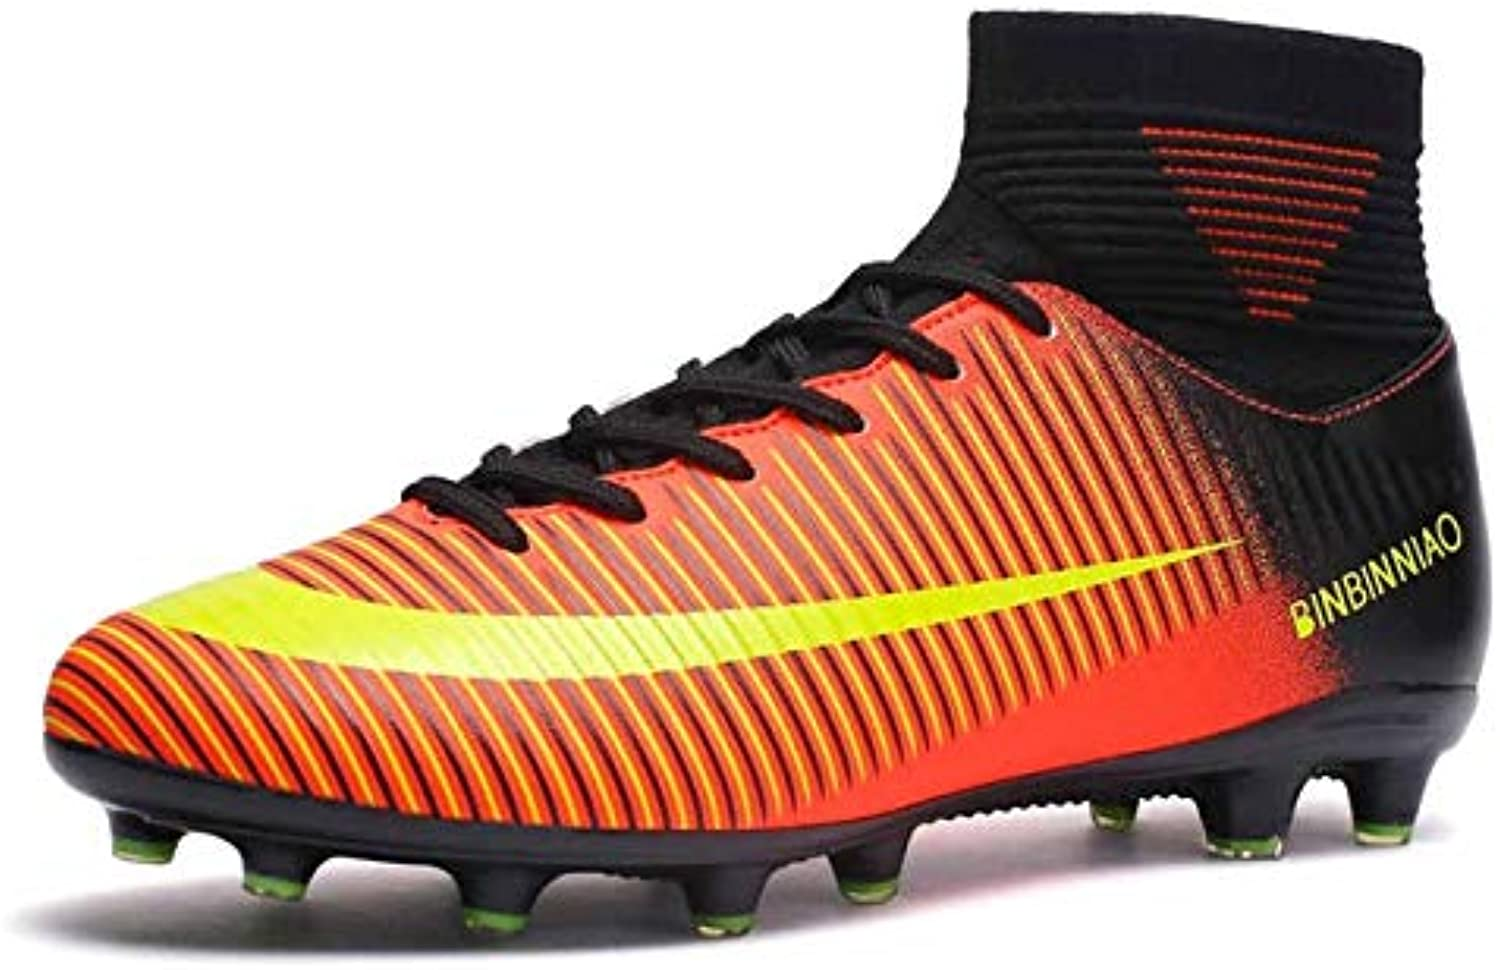 Soccer shoes High Top Non-slip Wearable and Comfortable Football Boots Soccer Cleats for Men, shoes Size 7(Long Spikes Black)